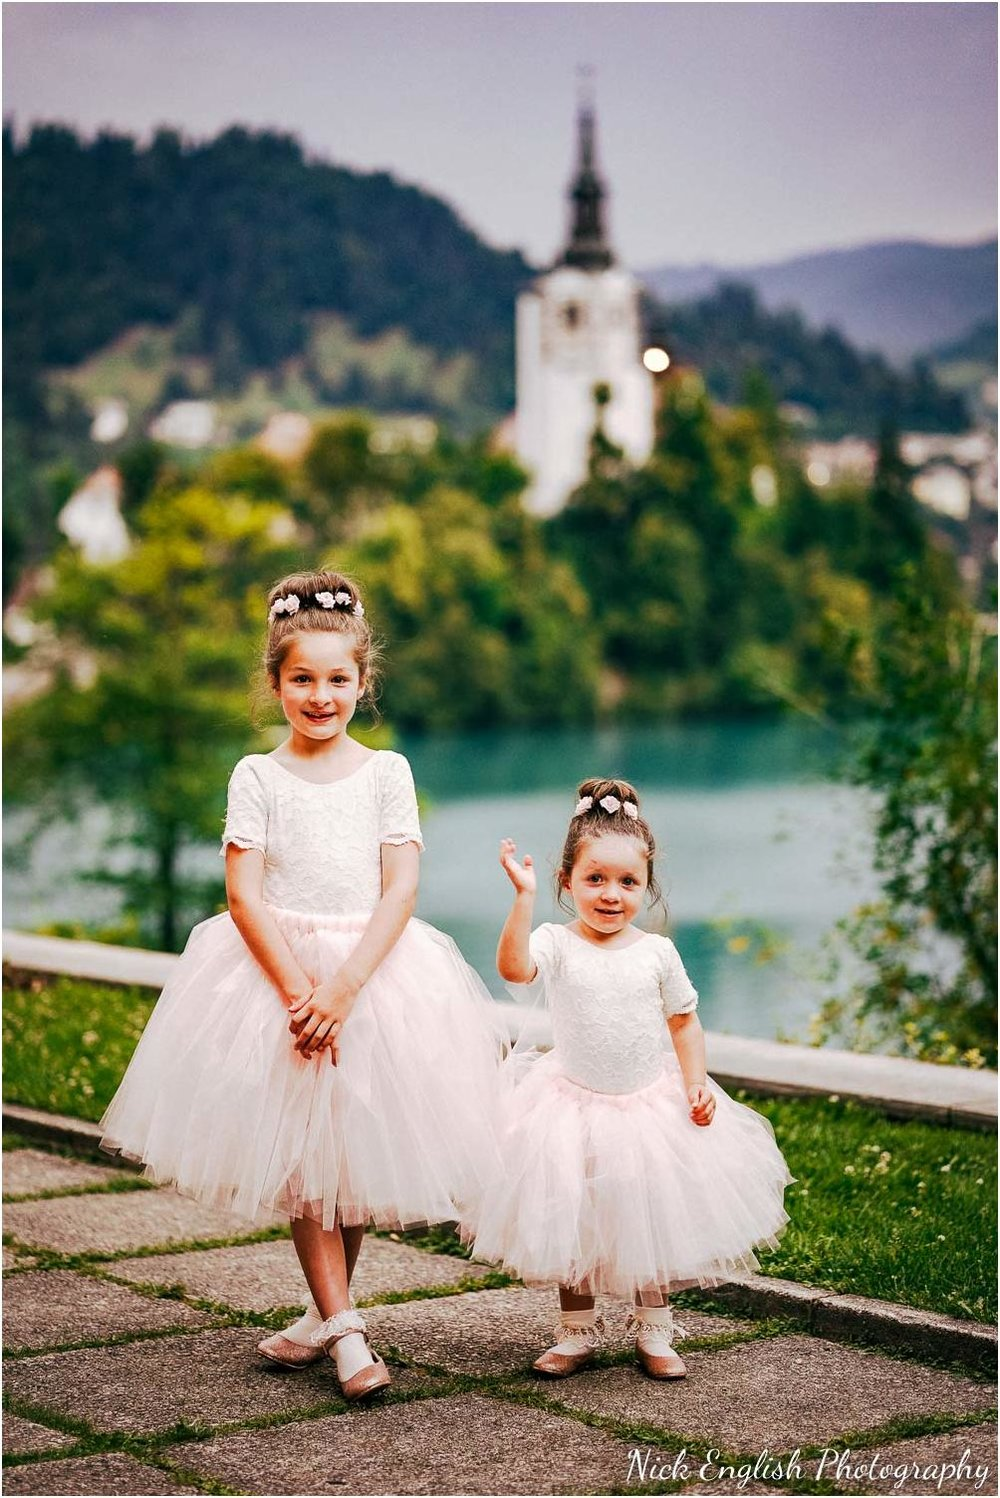 Destination_Wedding_Photographer_Slovenia_Nick_English_Photography-90.jpg